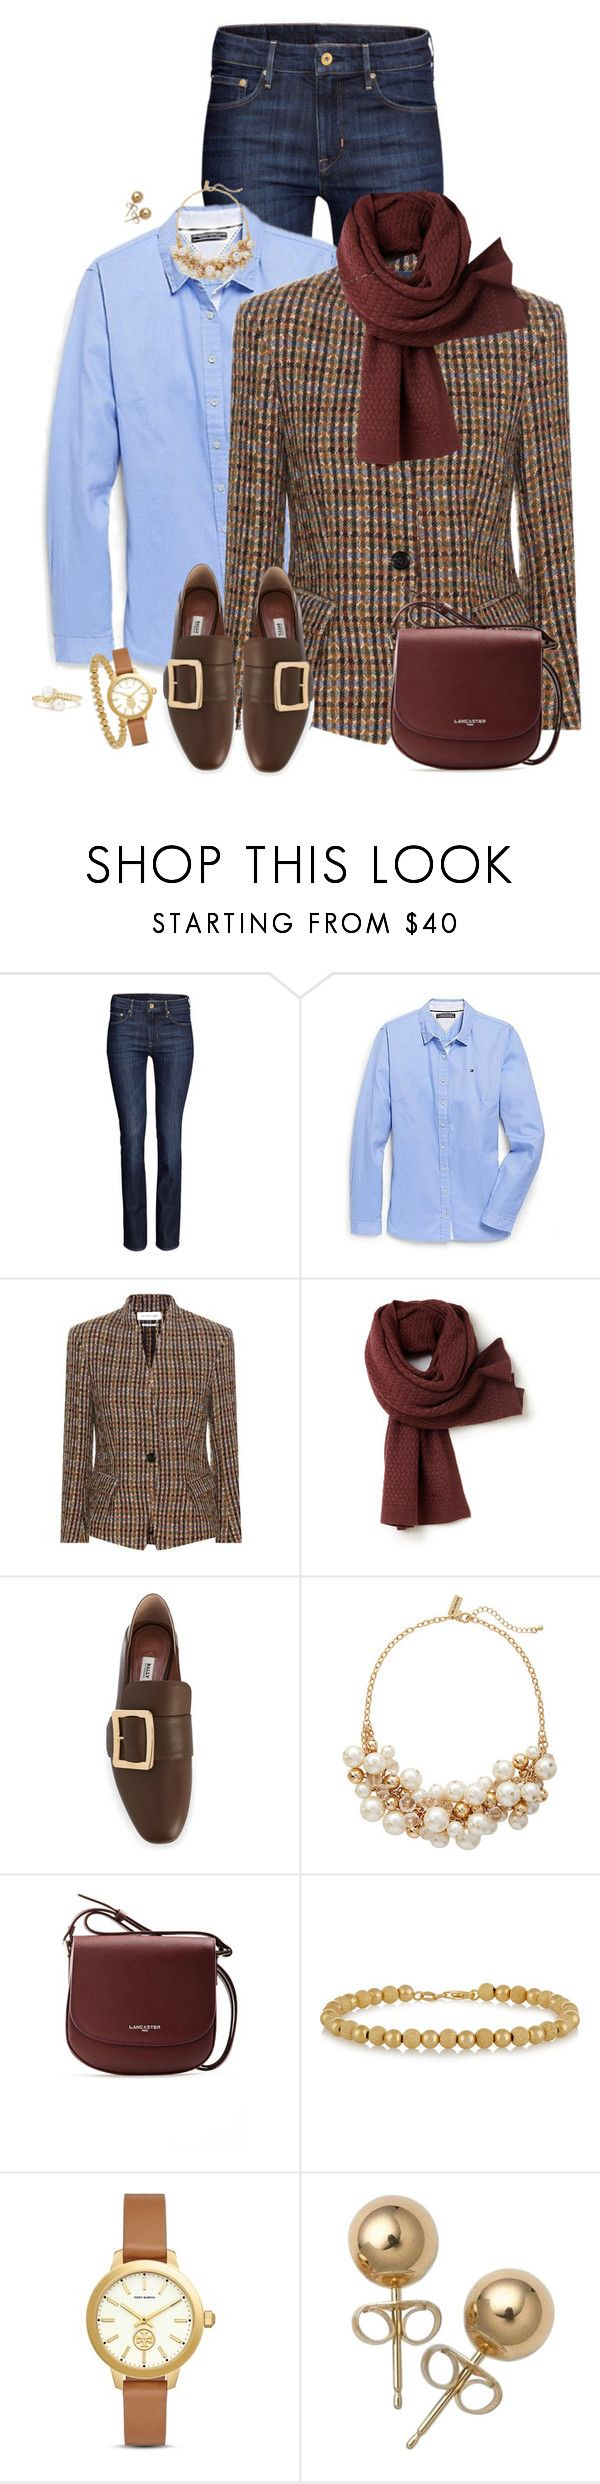 """""""Tweed Jacket (Outfit Only)"""" by fashionaddicta9 ❤ liked on Polyvore featuring H&M, Tommy Hilfiger, Lacoste, Bally, The Limited, Lancaster, Carolina Bucci, Tory Burch, Bling Jewelry and David Yurman"""